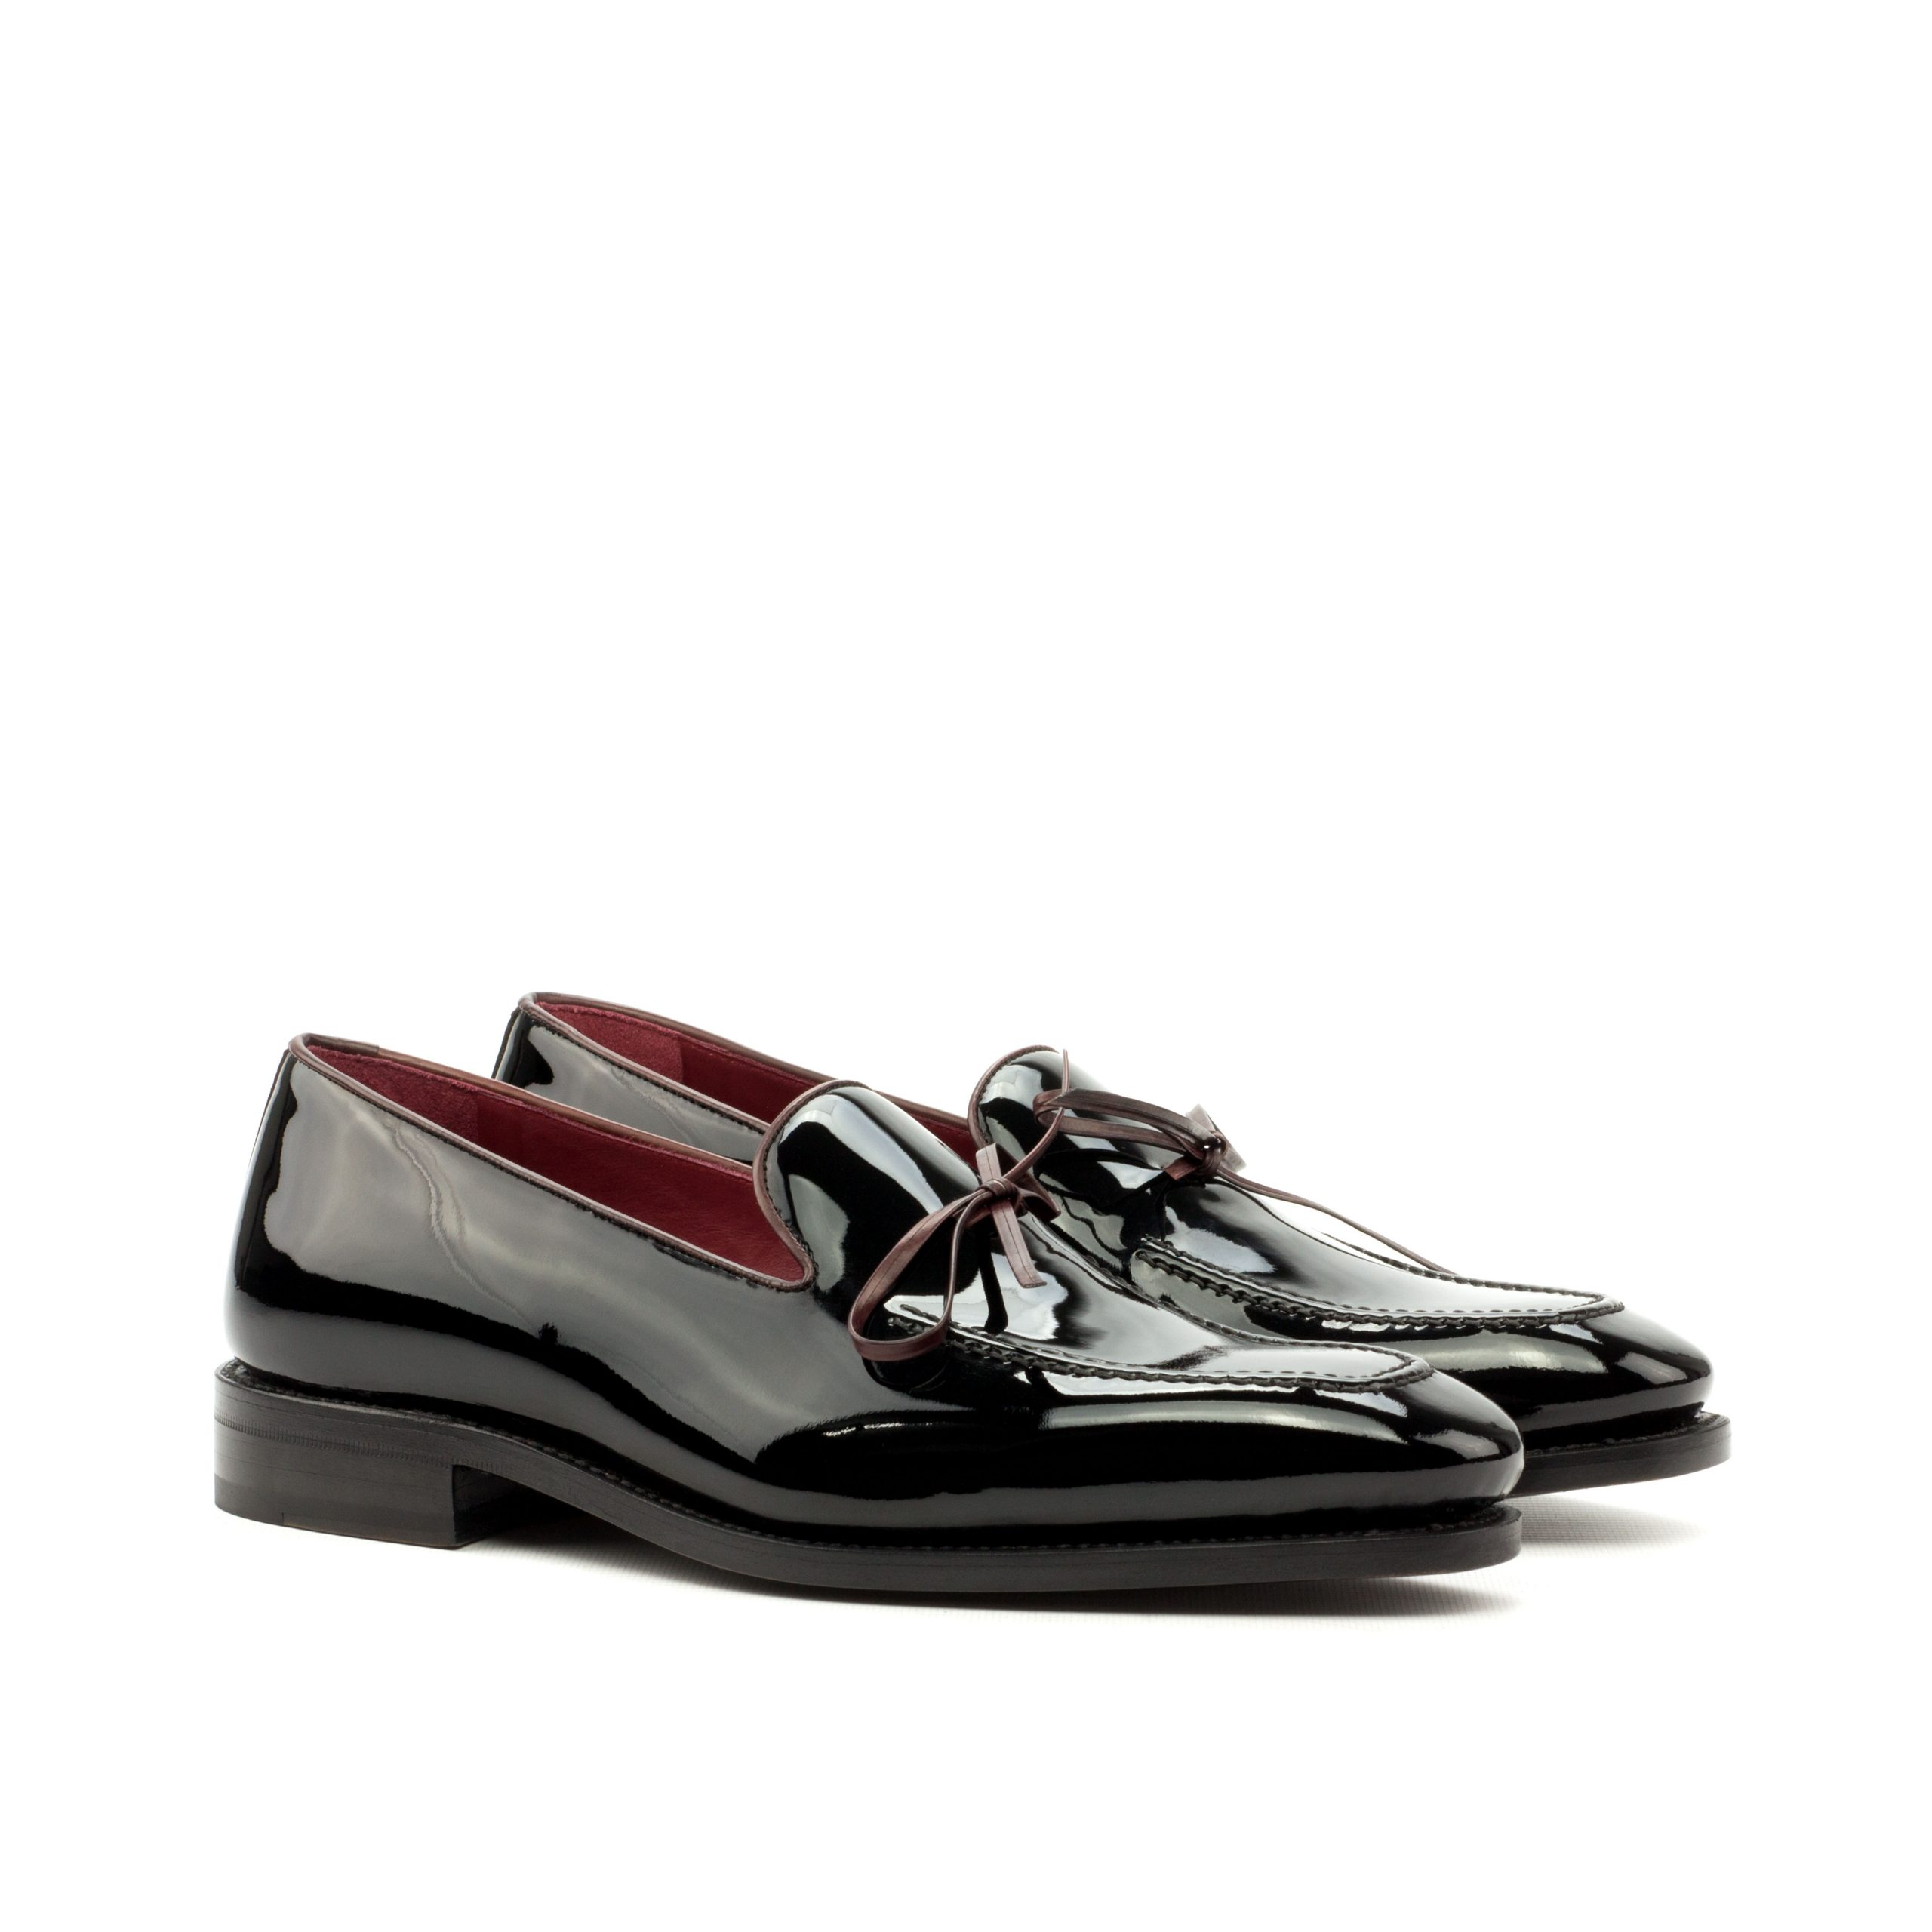 Loafer Goodyear Welted - Patent Black-Polished Calf Burgundy-Ang5